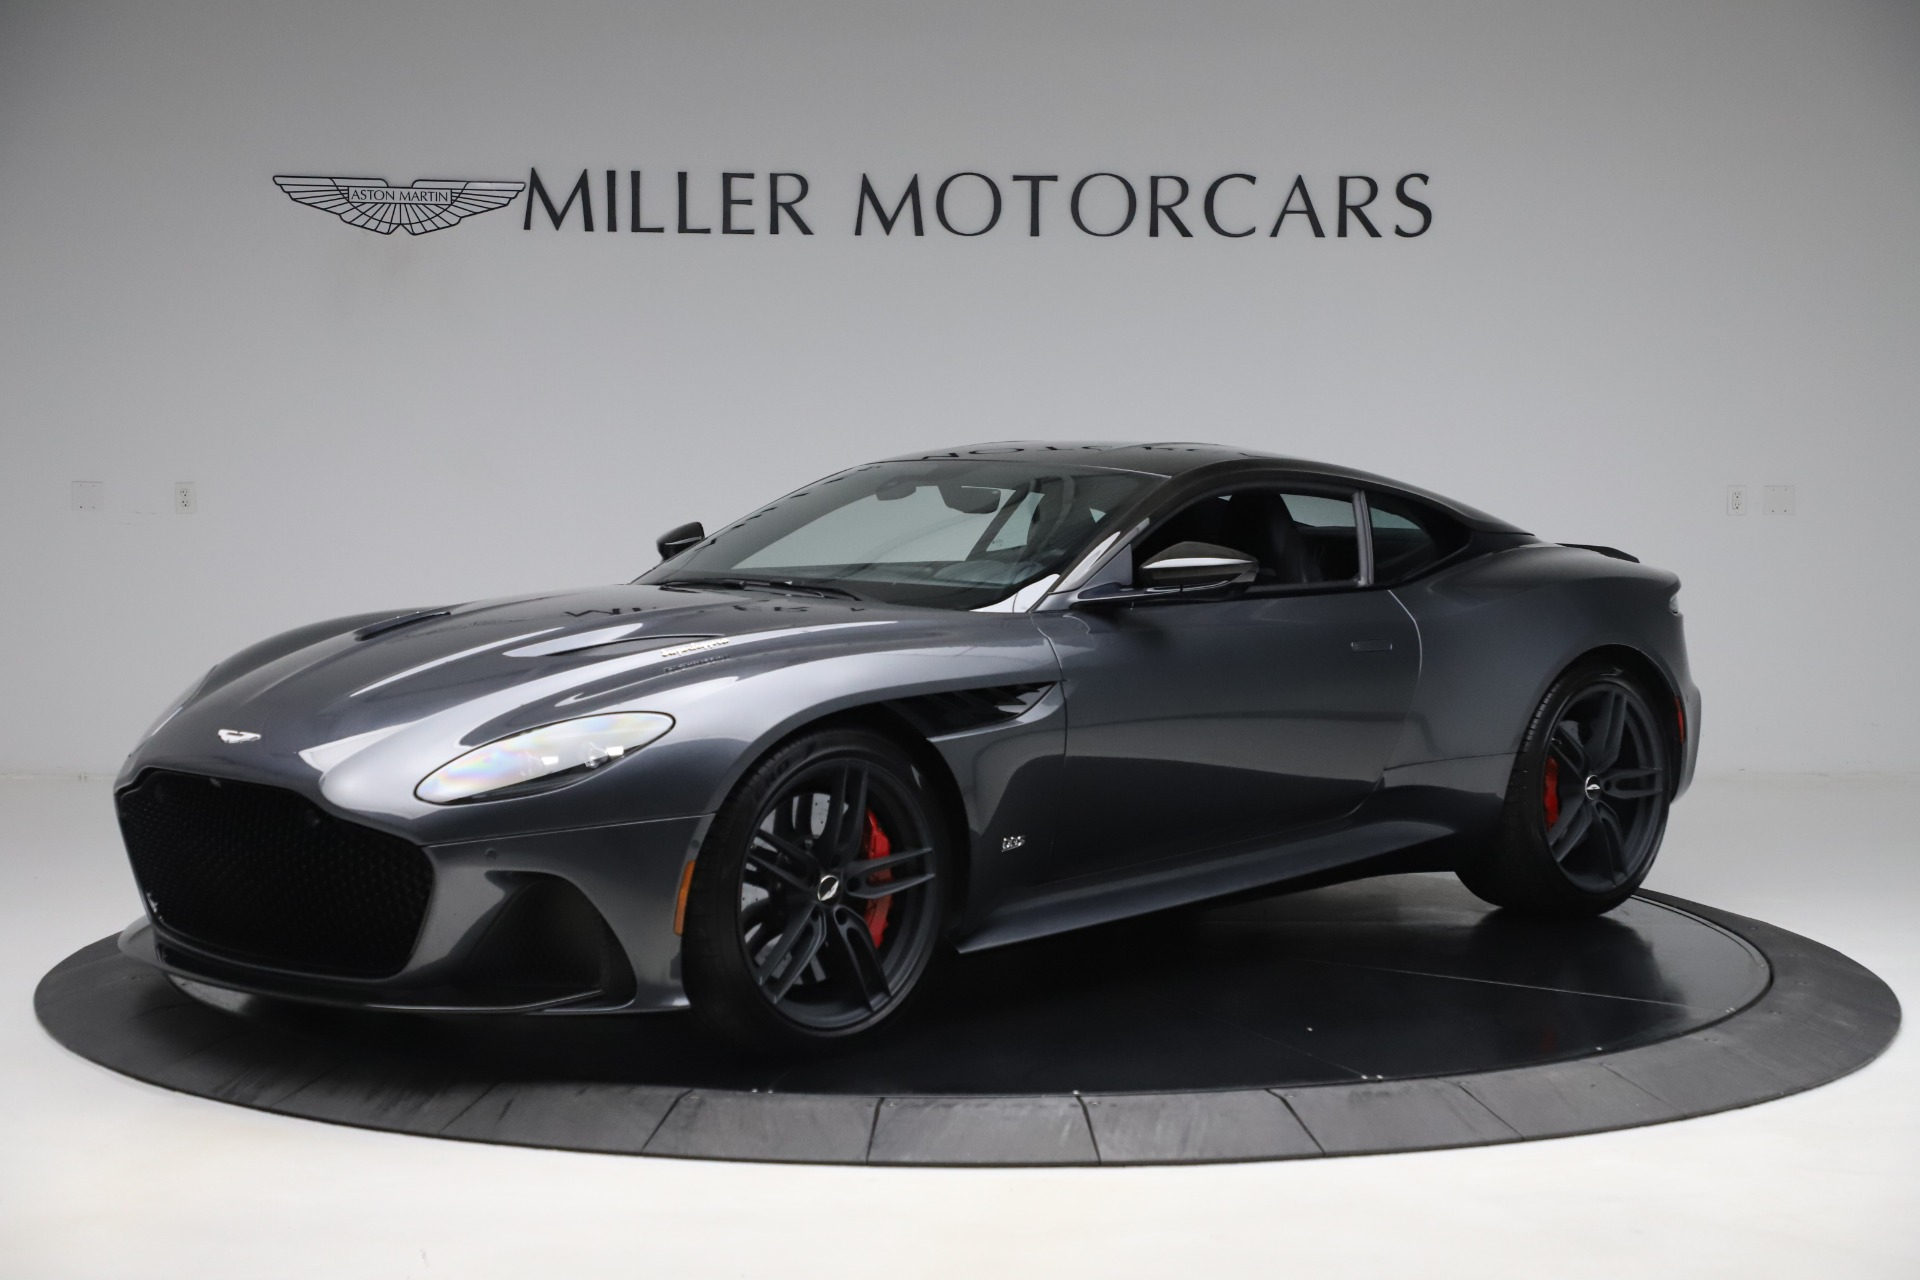 Used 2019 Aston Martin DBS Superleggera Coupe for sale Sold at Bugatti of Greenwich in Greenwich CT 06830 1